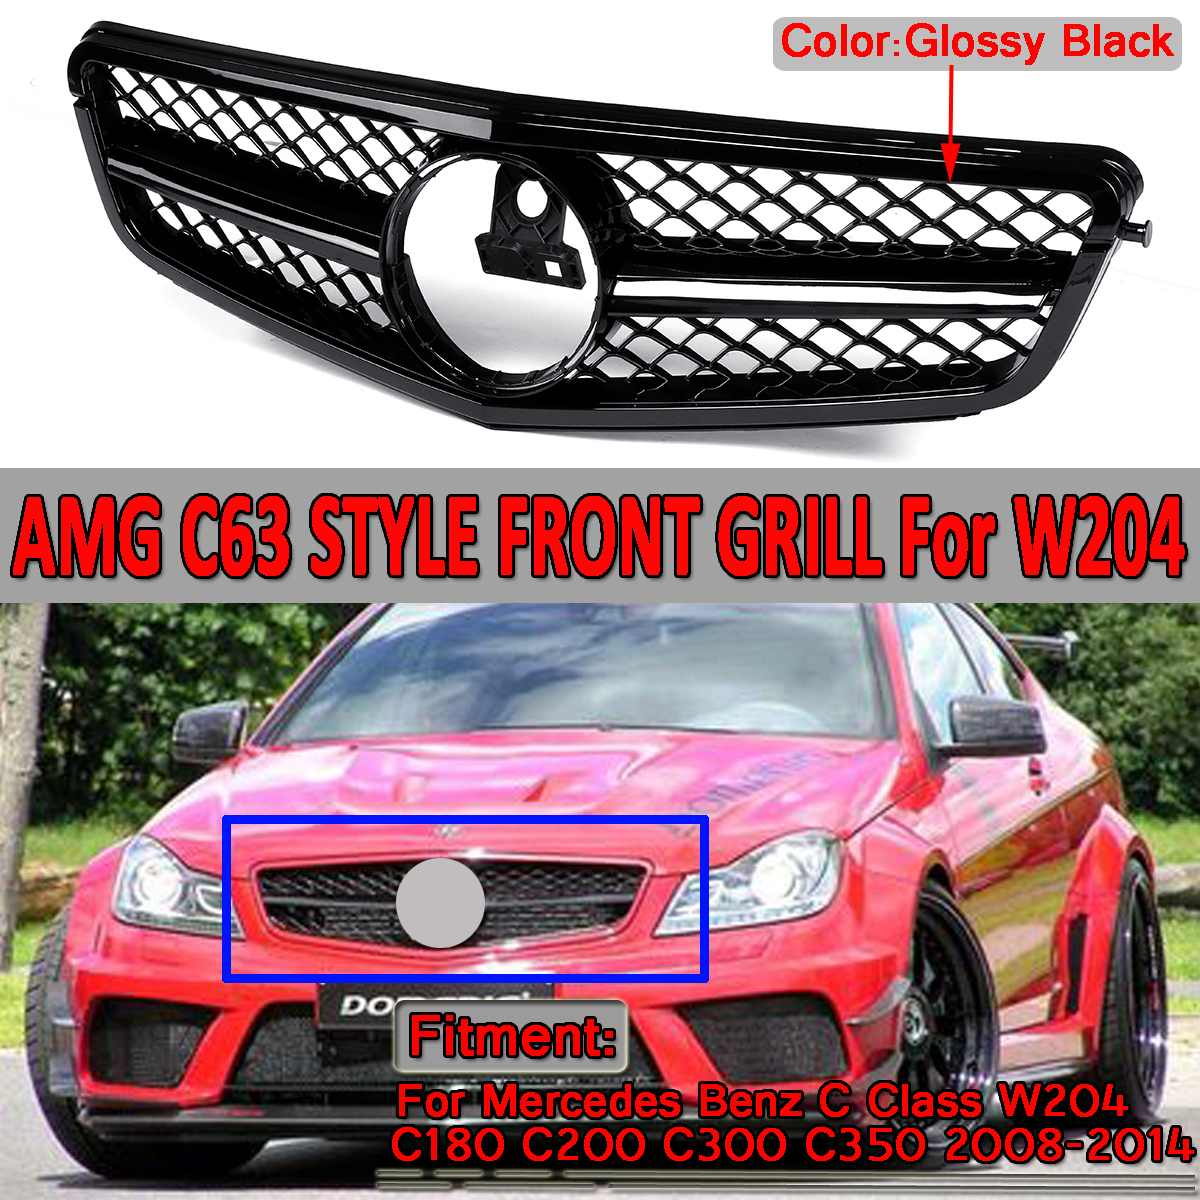 W204 C63 Grill Car Front Upper Grille Grill For Mercedes For Benz C Class W204 C180 C200 C300 C350 2008 2014 For AMG C63 Style